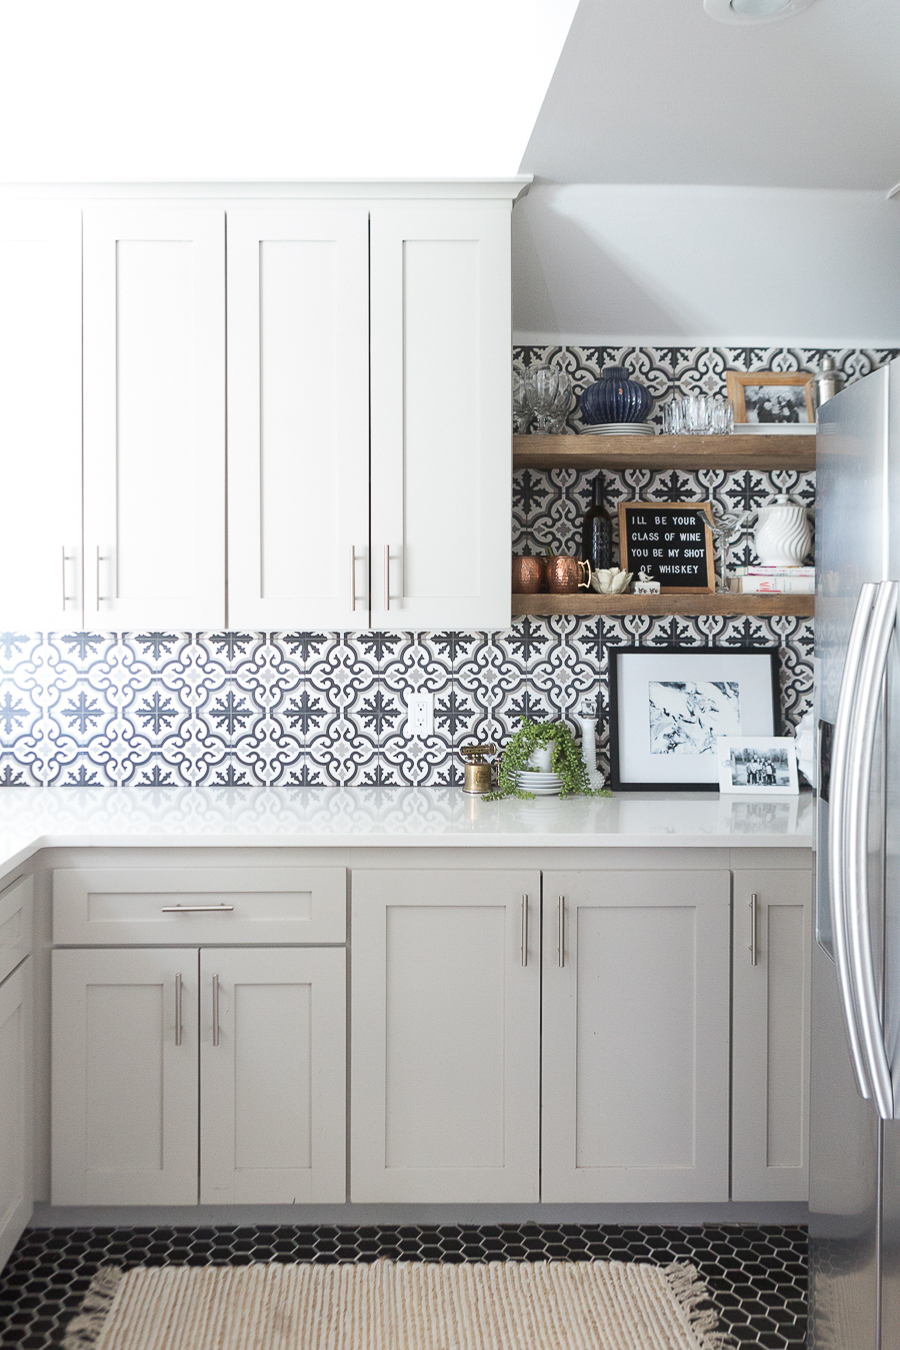 Kitchen Backsplash  X  Tile